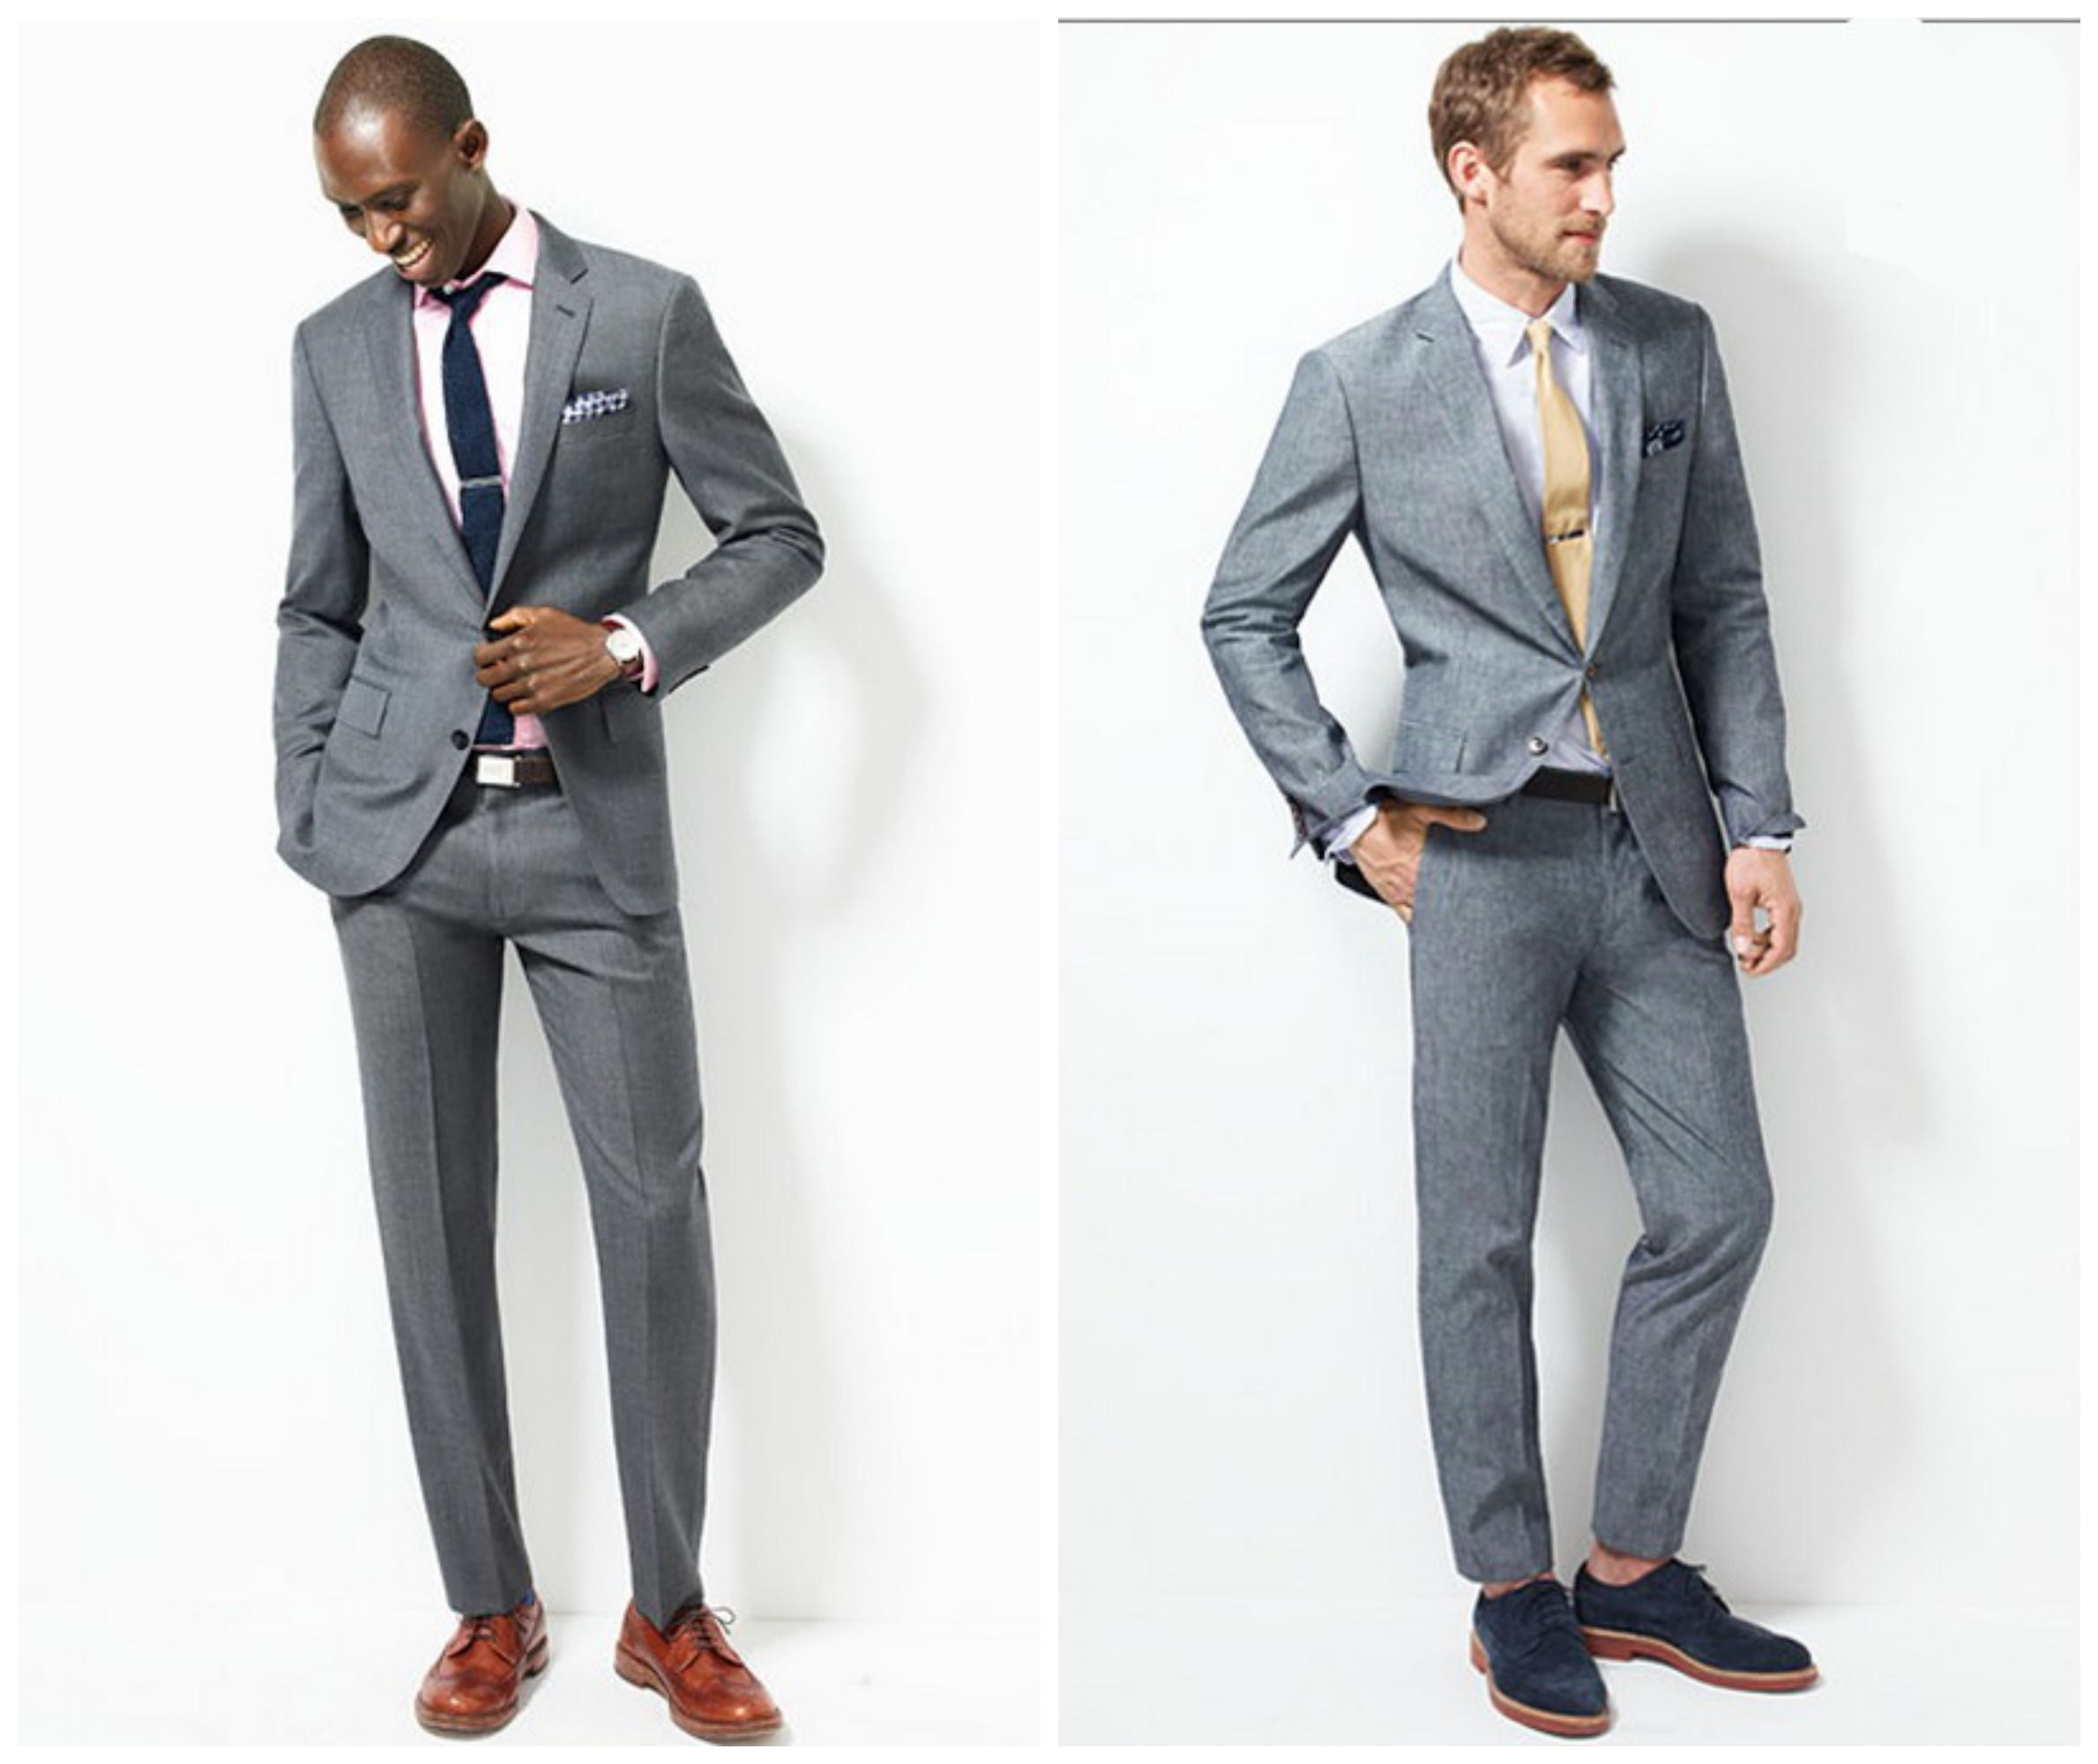 Finding The Right Outfit For The Groom | Wedding ...